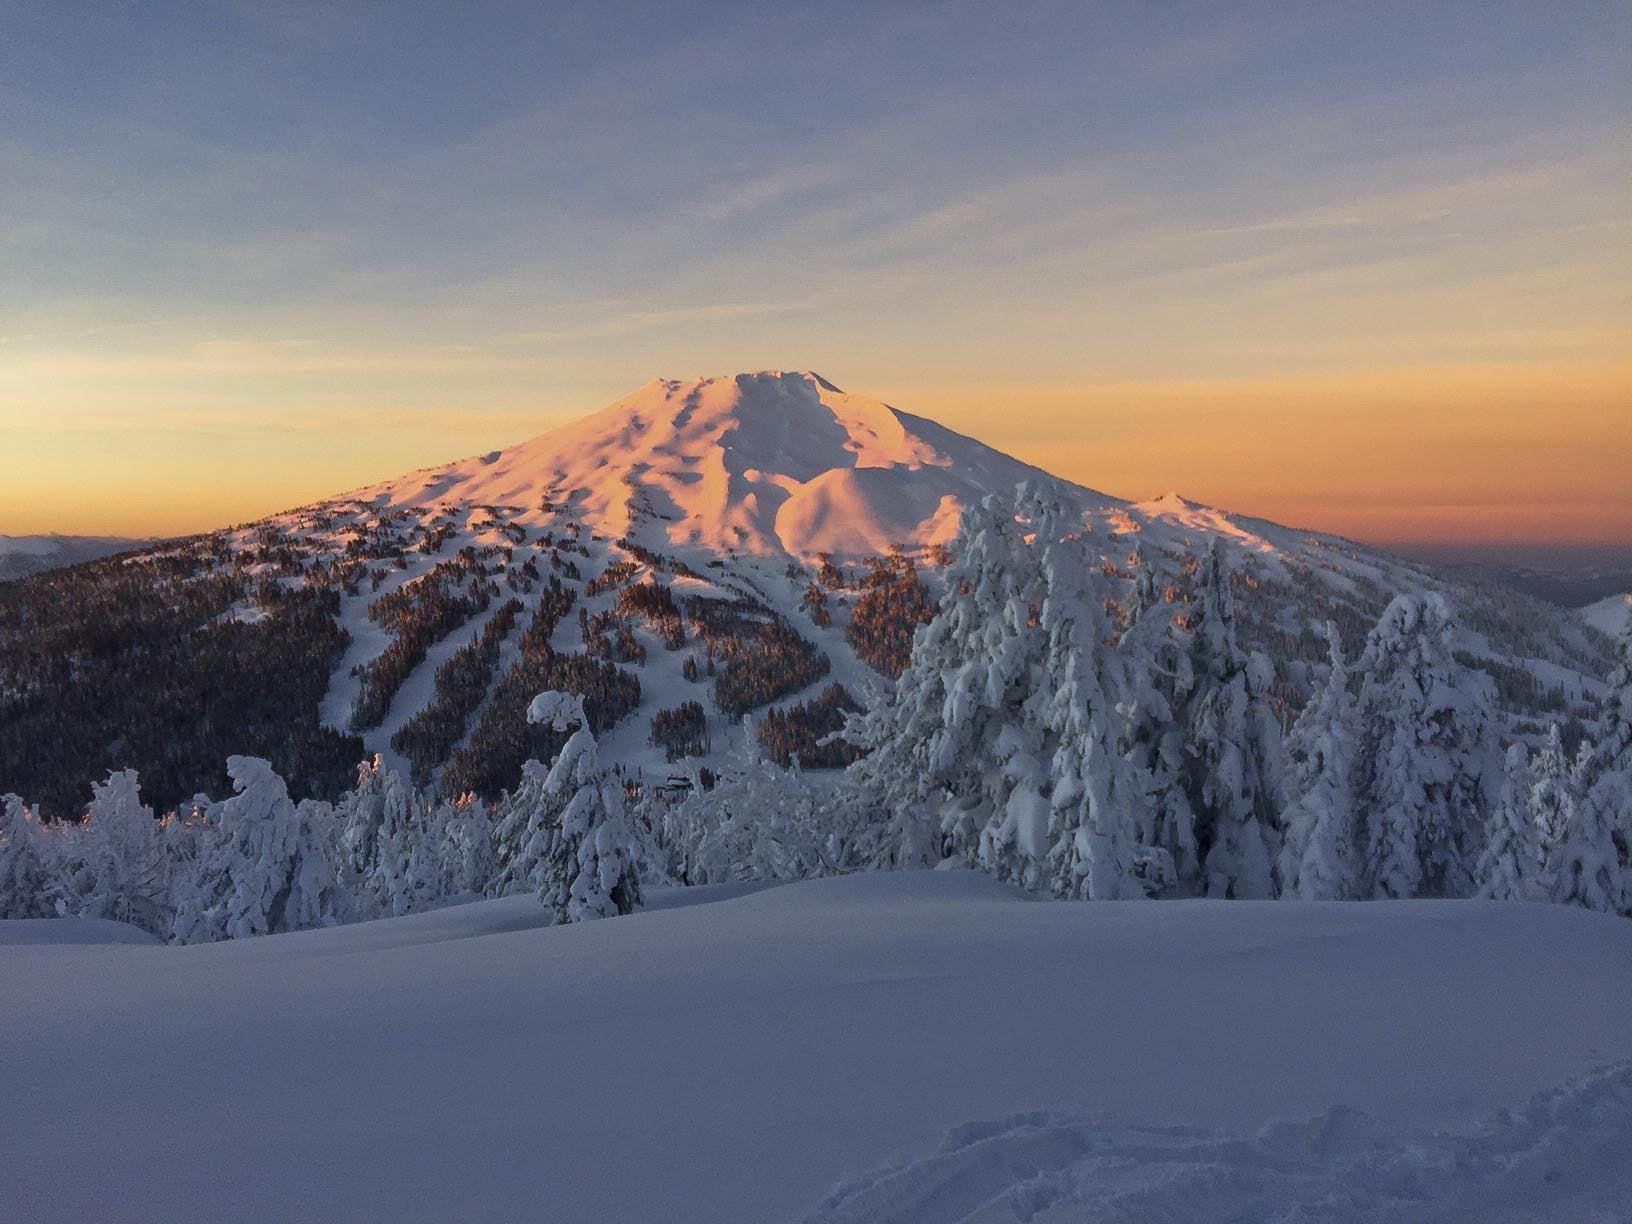 Sunrise skin up Tumalo Mountain with buddy Sam Balyeat with views of Mount Bachelor, OR.